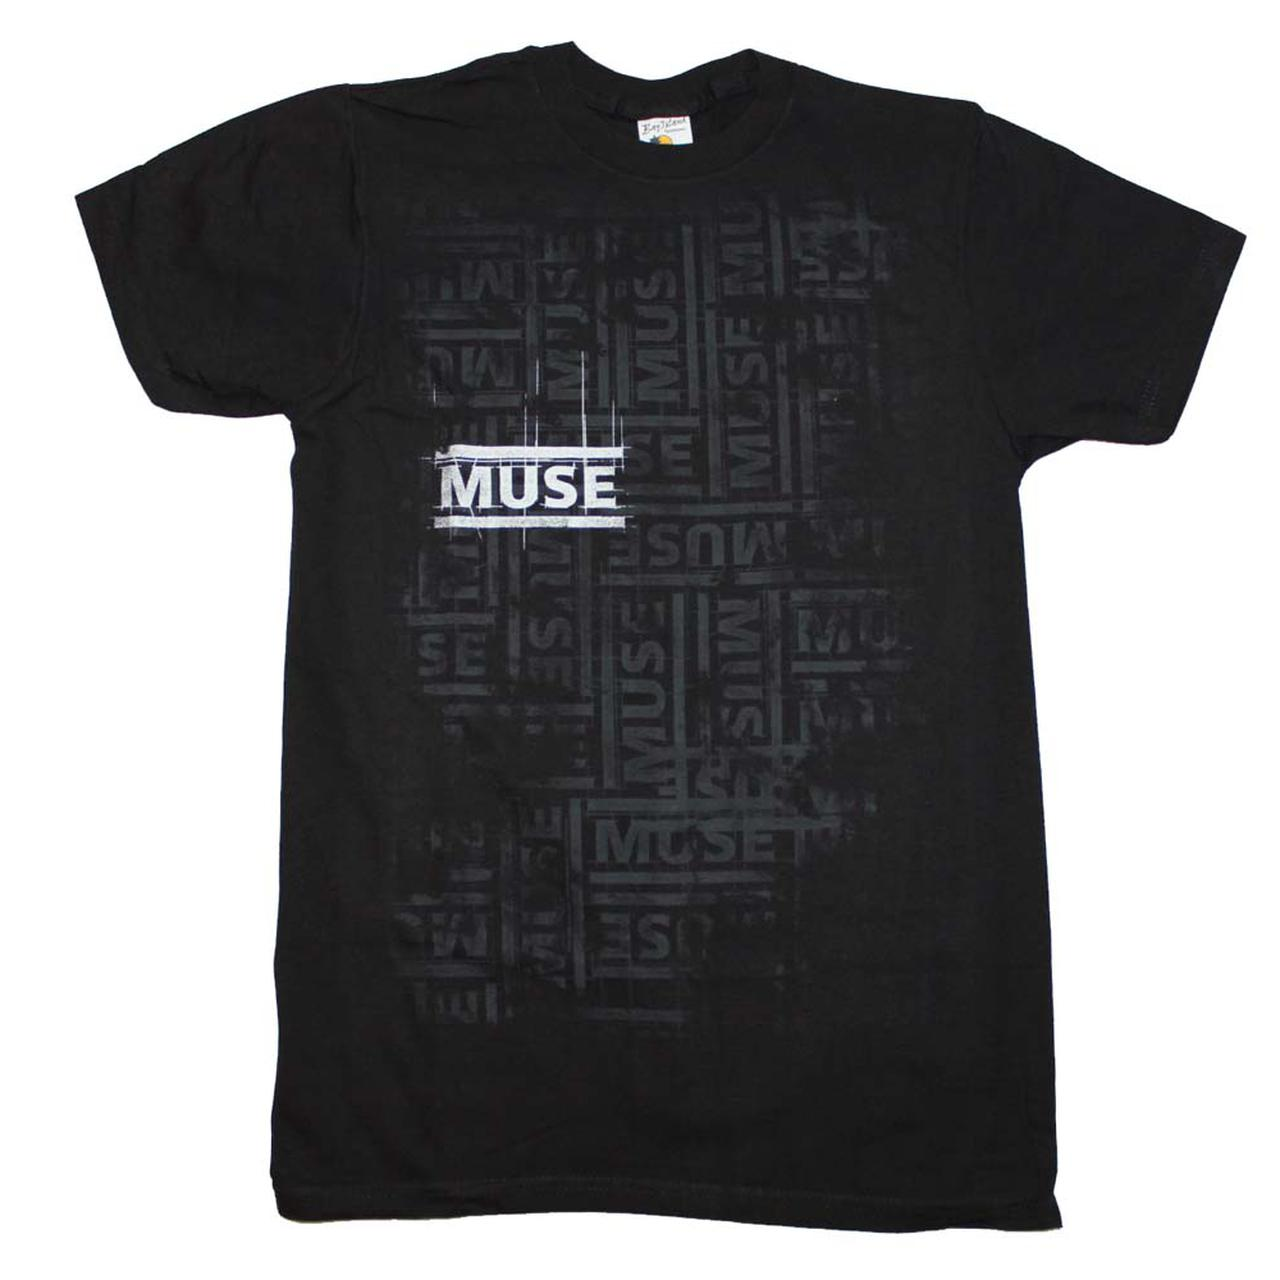 muse t shirt muse repeat t shirt. Black Bedroom Furniture Sets. Home Design Ideas